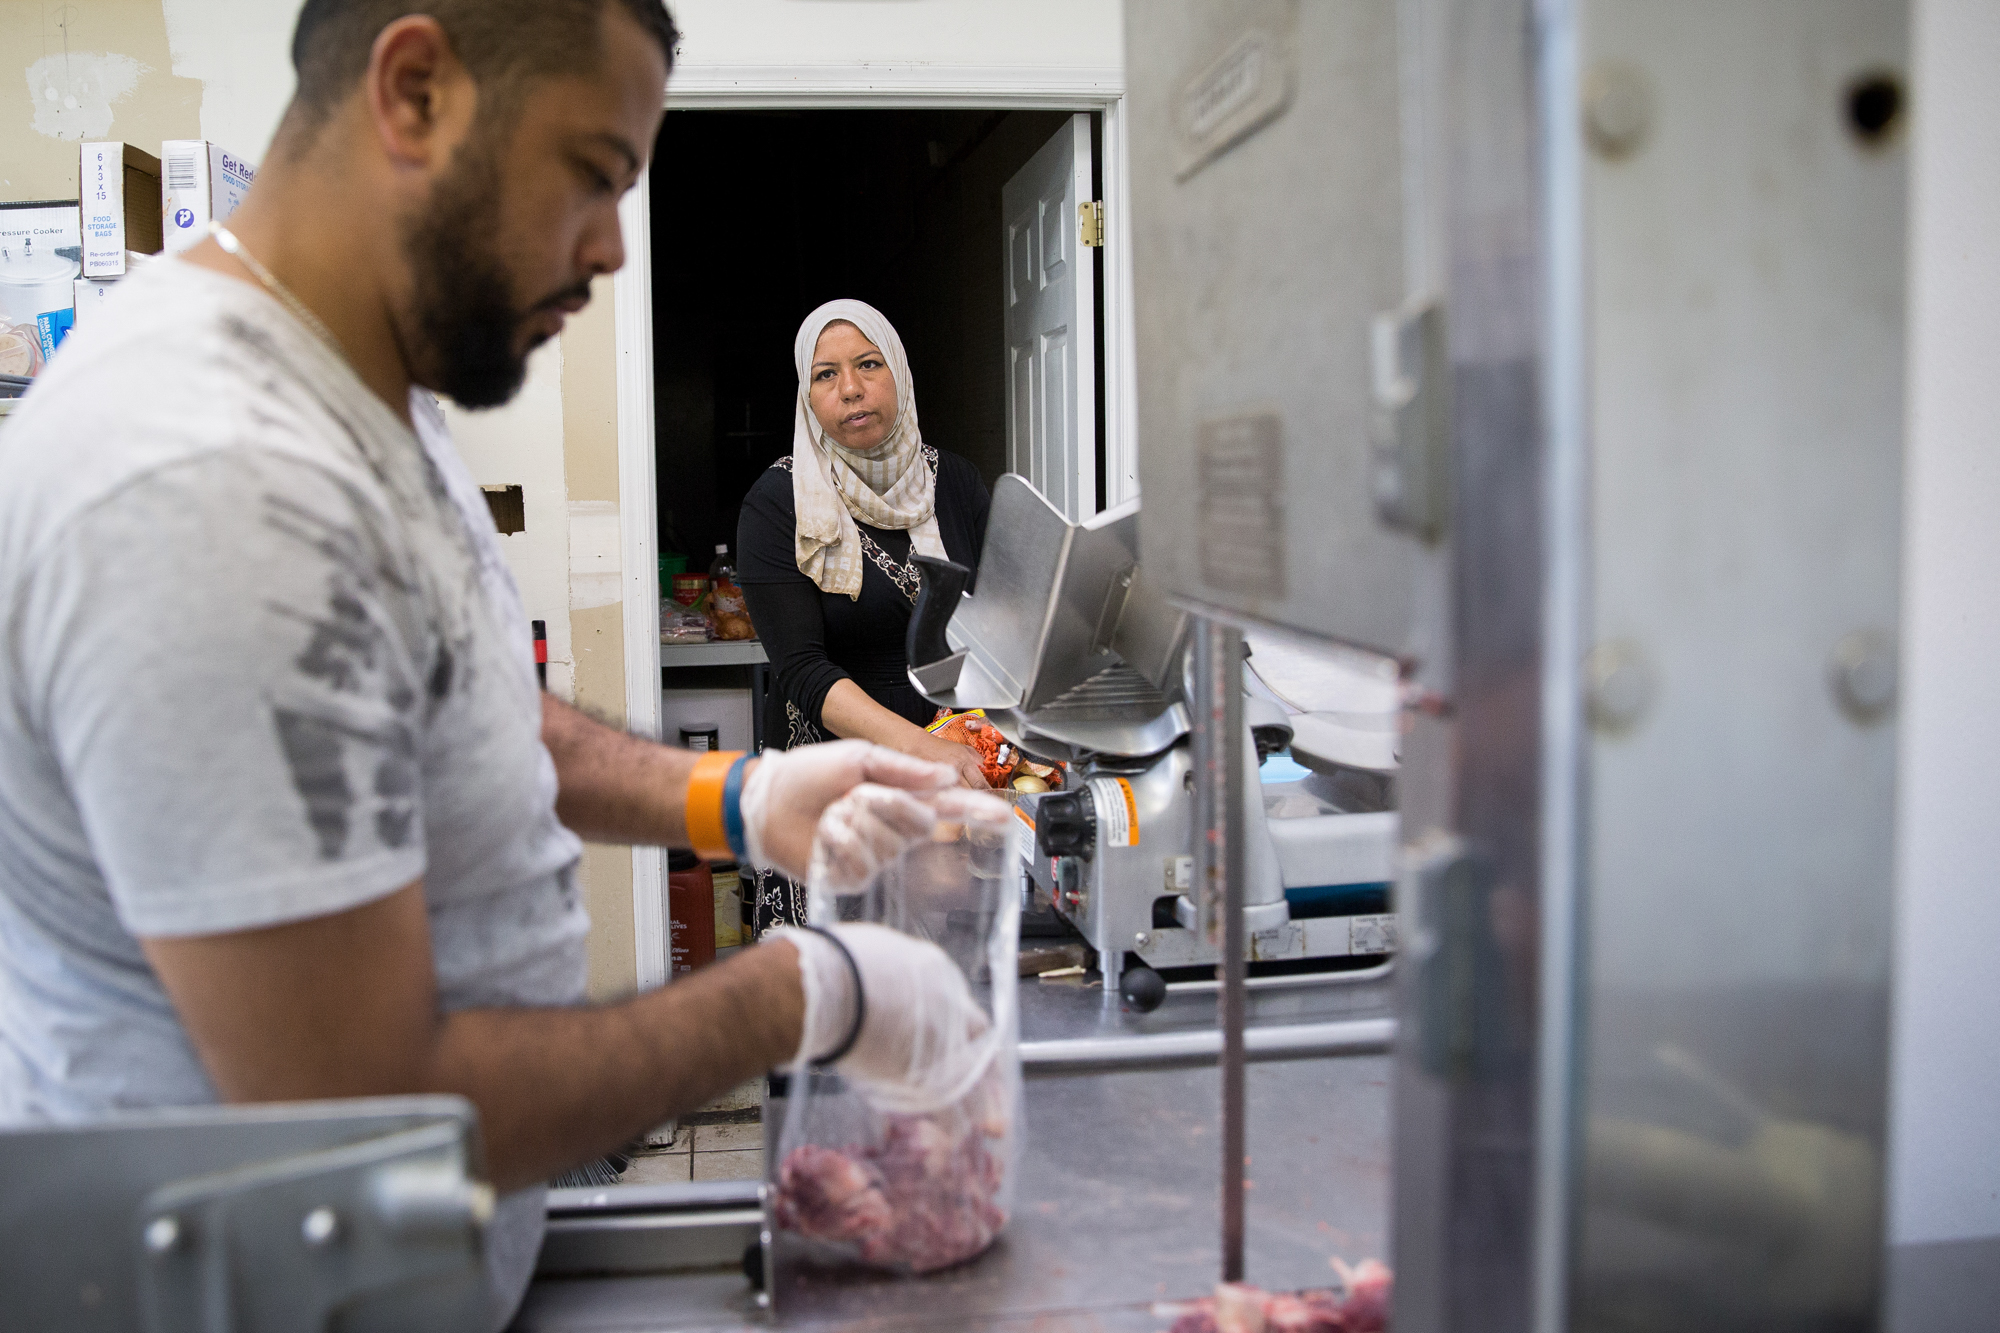 Ola Soweilam talks to her brother, Ahmed Soweilam as he packages meat at El Ola Mediterranean in Camp Hill. Ahmed helps his sister at her store most days of the week, often serving customers while Ola works in the kitchen.